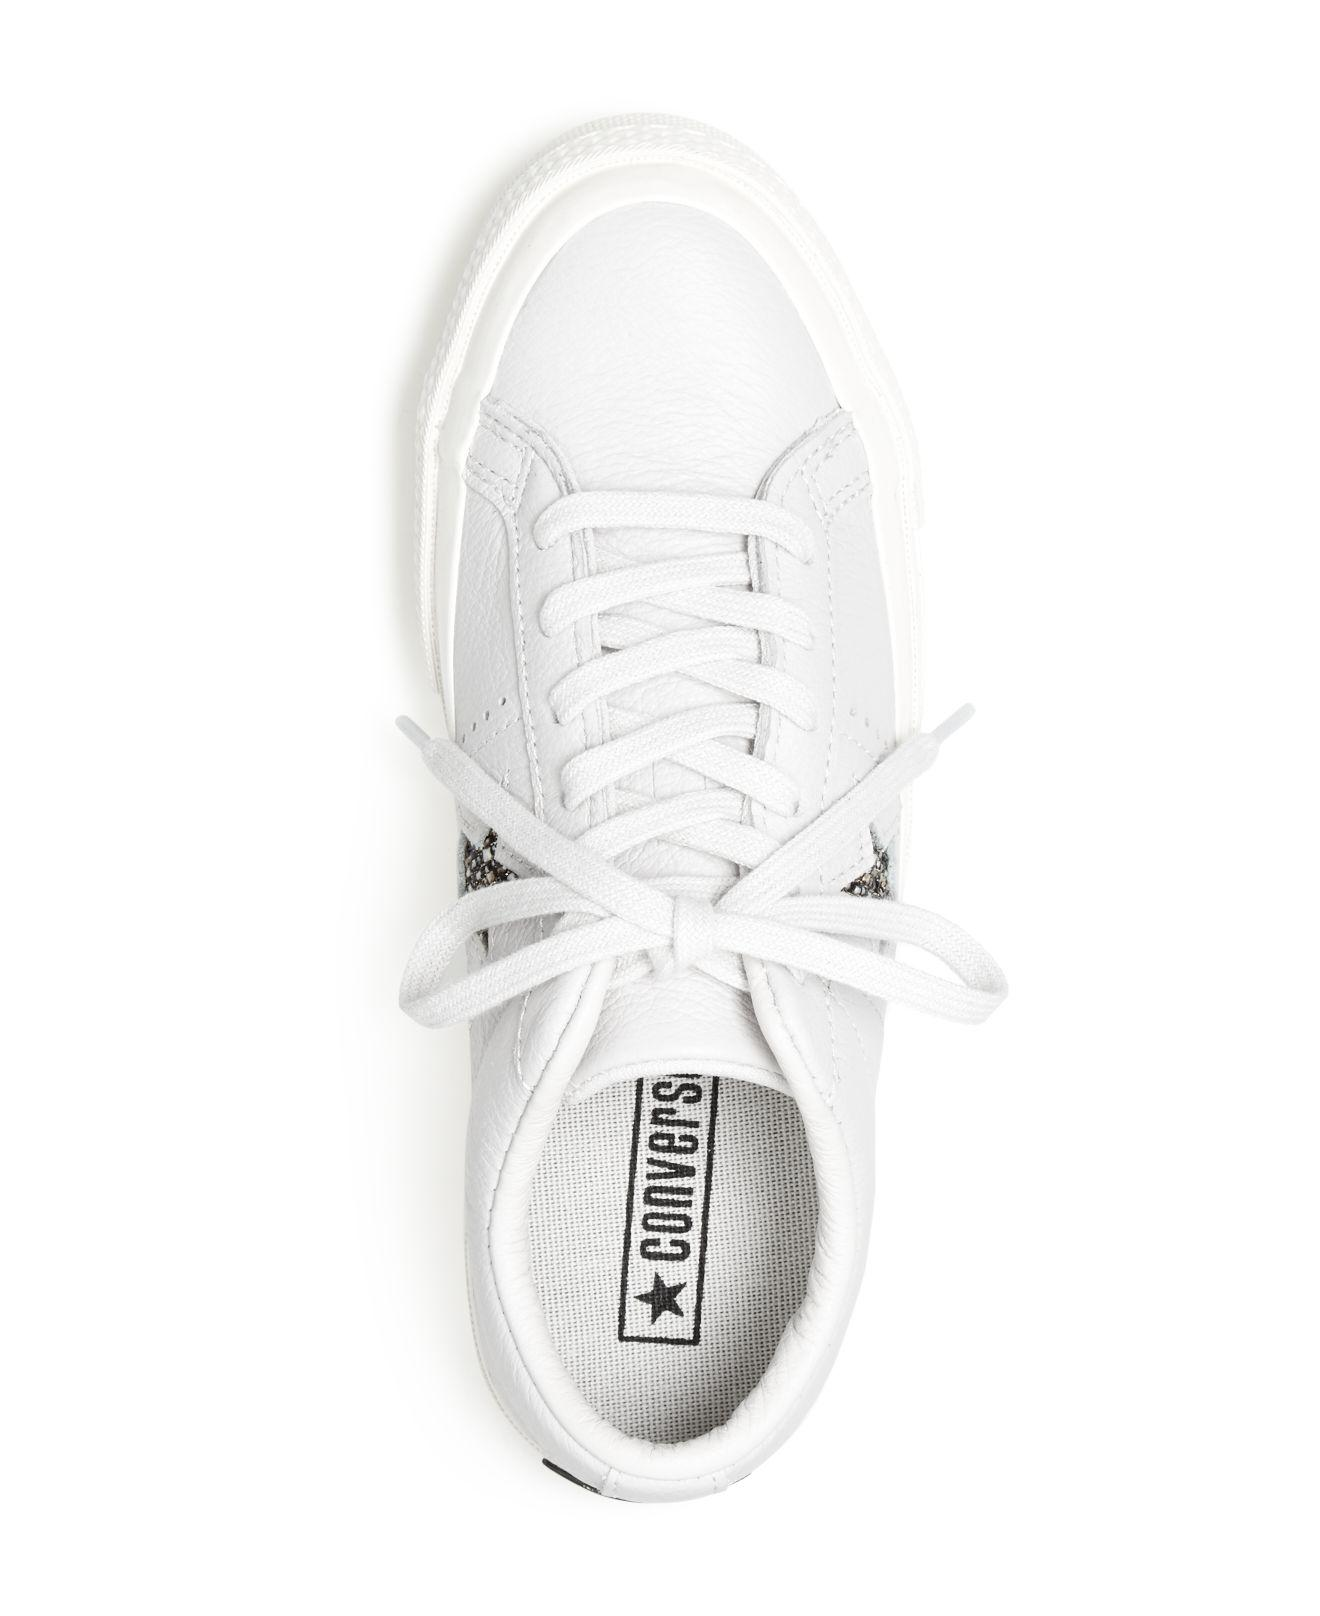 Converse Women's One Star Leather Lace Up Sneakers in White